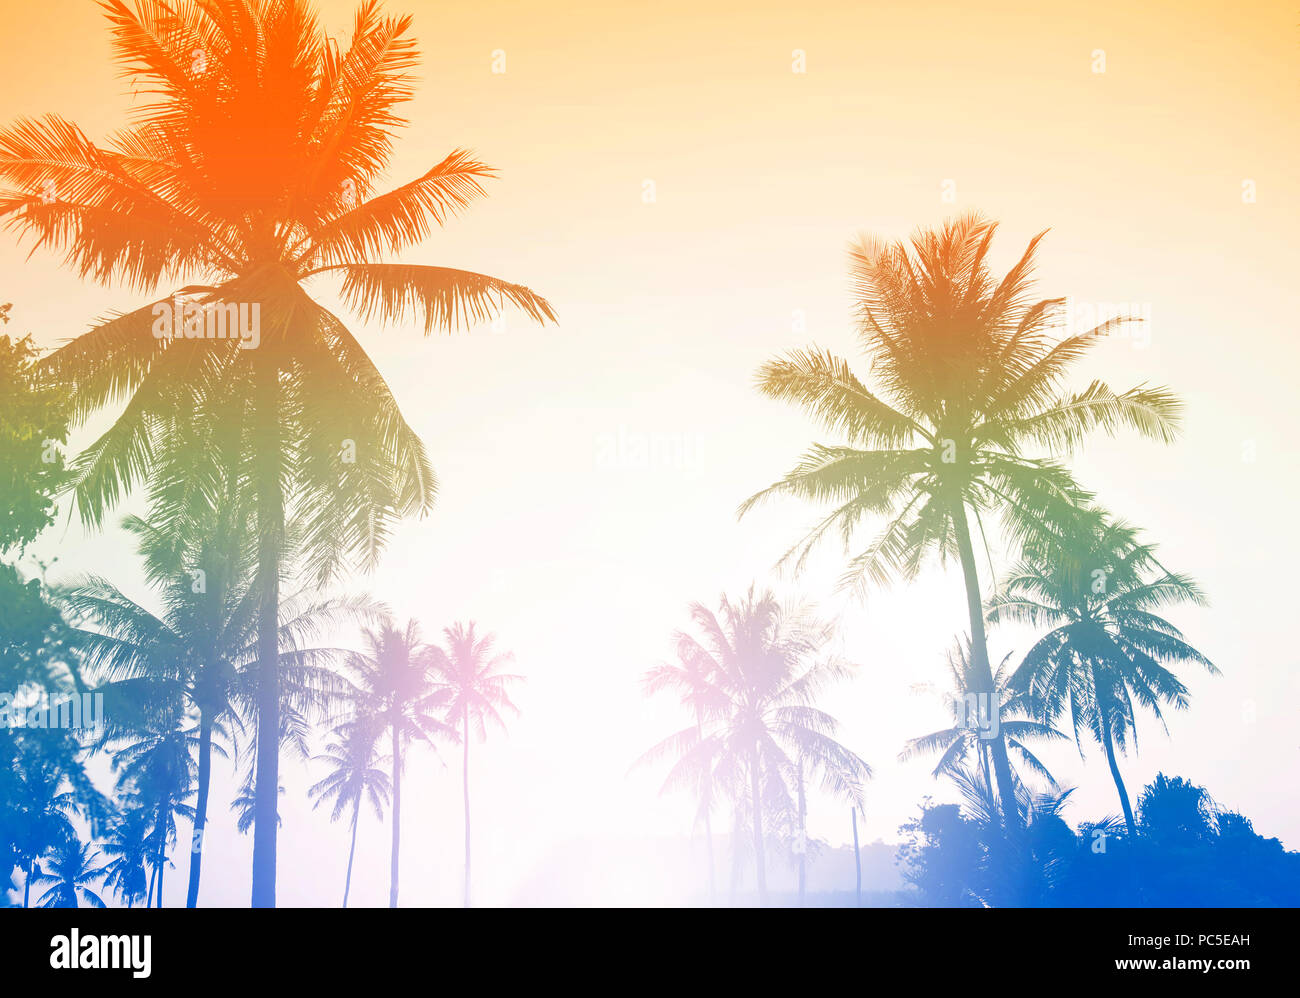 Palm tree or coconut tree at tropical coast made with vintage tones style background. - Stock Image